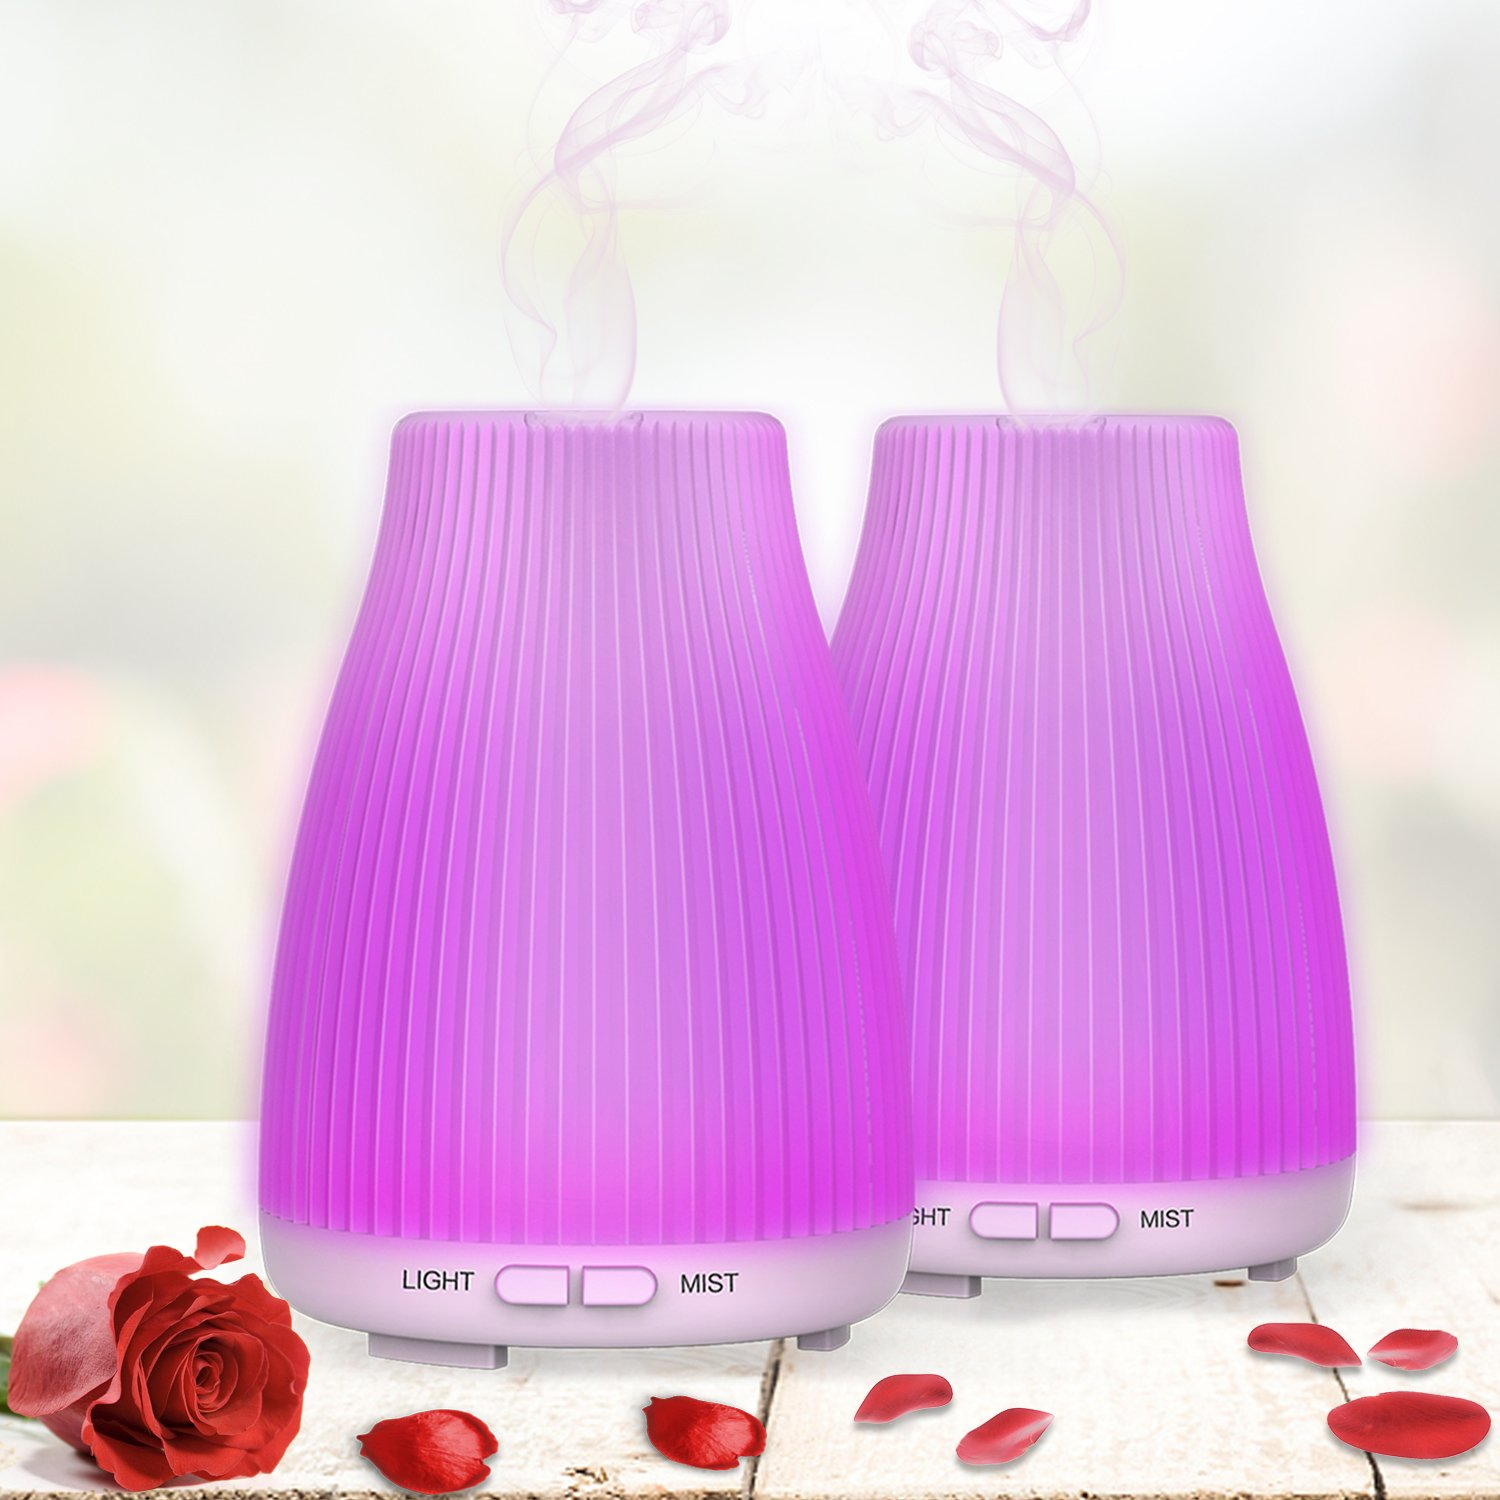 Aromatherapy Essential Oil Diffuser 100ml Diffusers For Essential Oils, Neloodony Diffuser Humidifier With 8 Colors Light, Waterless Auto Shut-off,Adjustable Mist Mode Mother's Day Gift Ideas-2 Pack